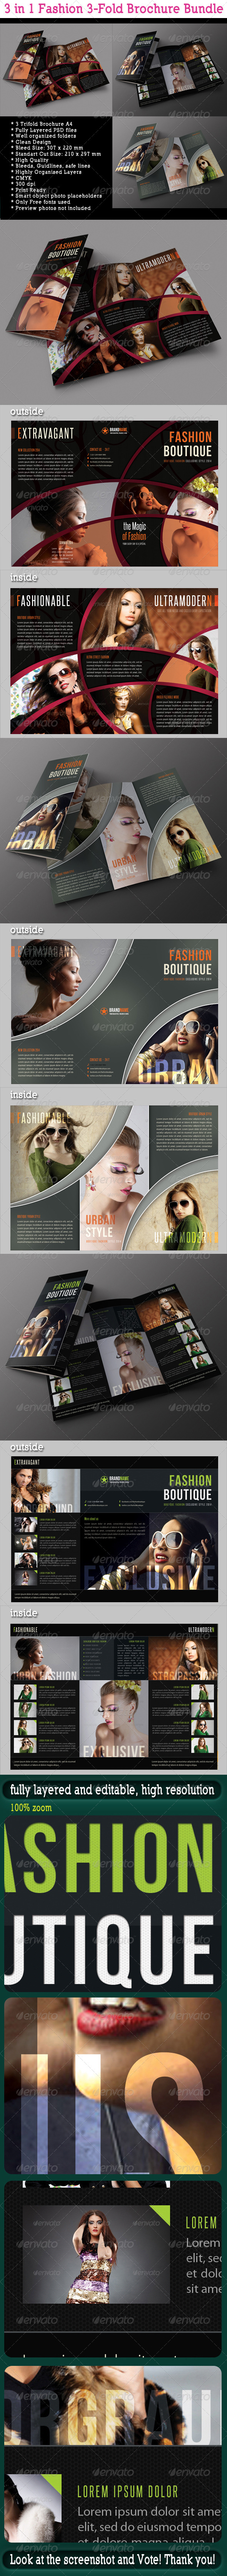 GraphicRiver 3 in 1 Fashion 3-Fold Brochure Bundle 04 6695608